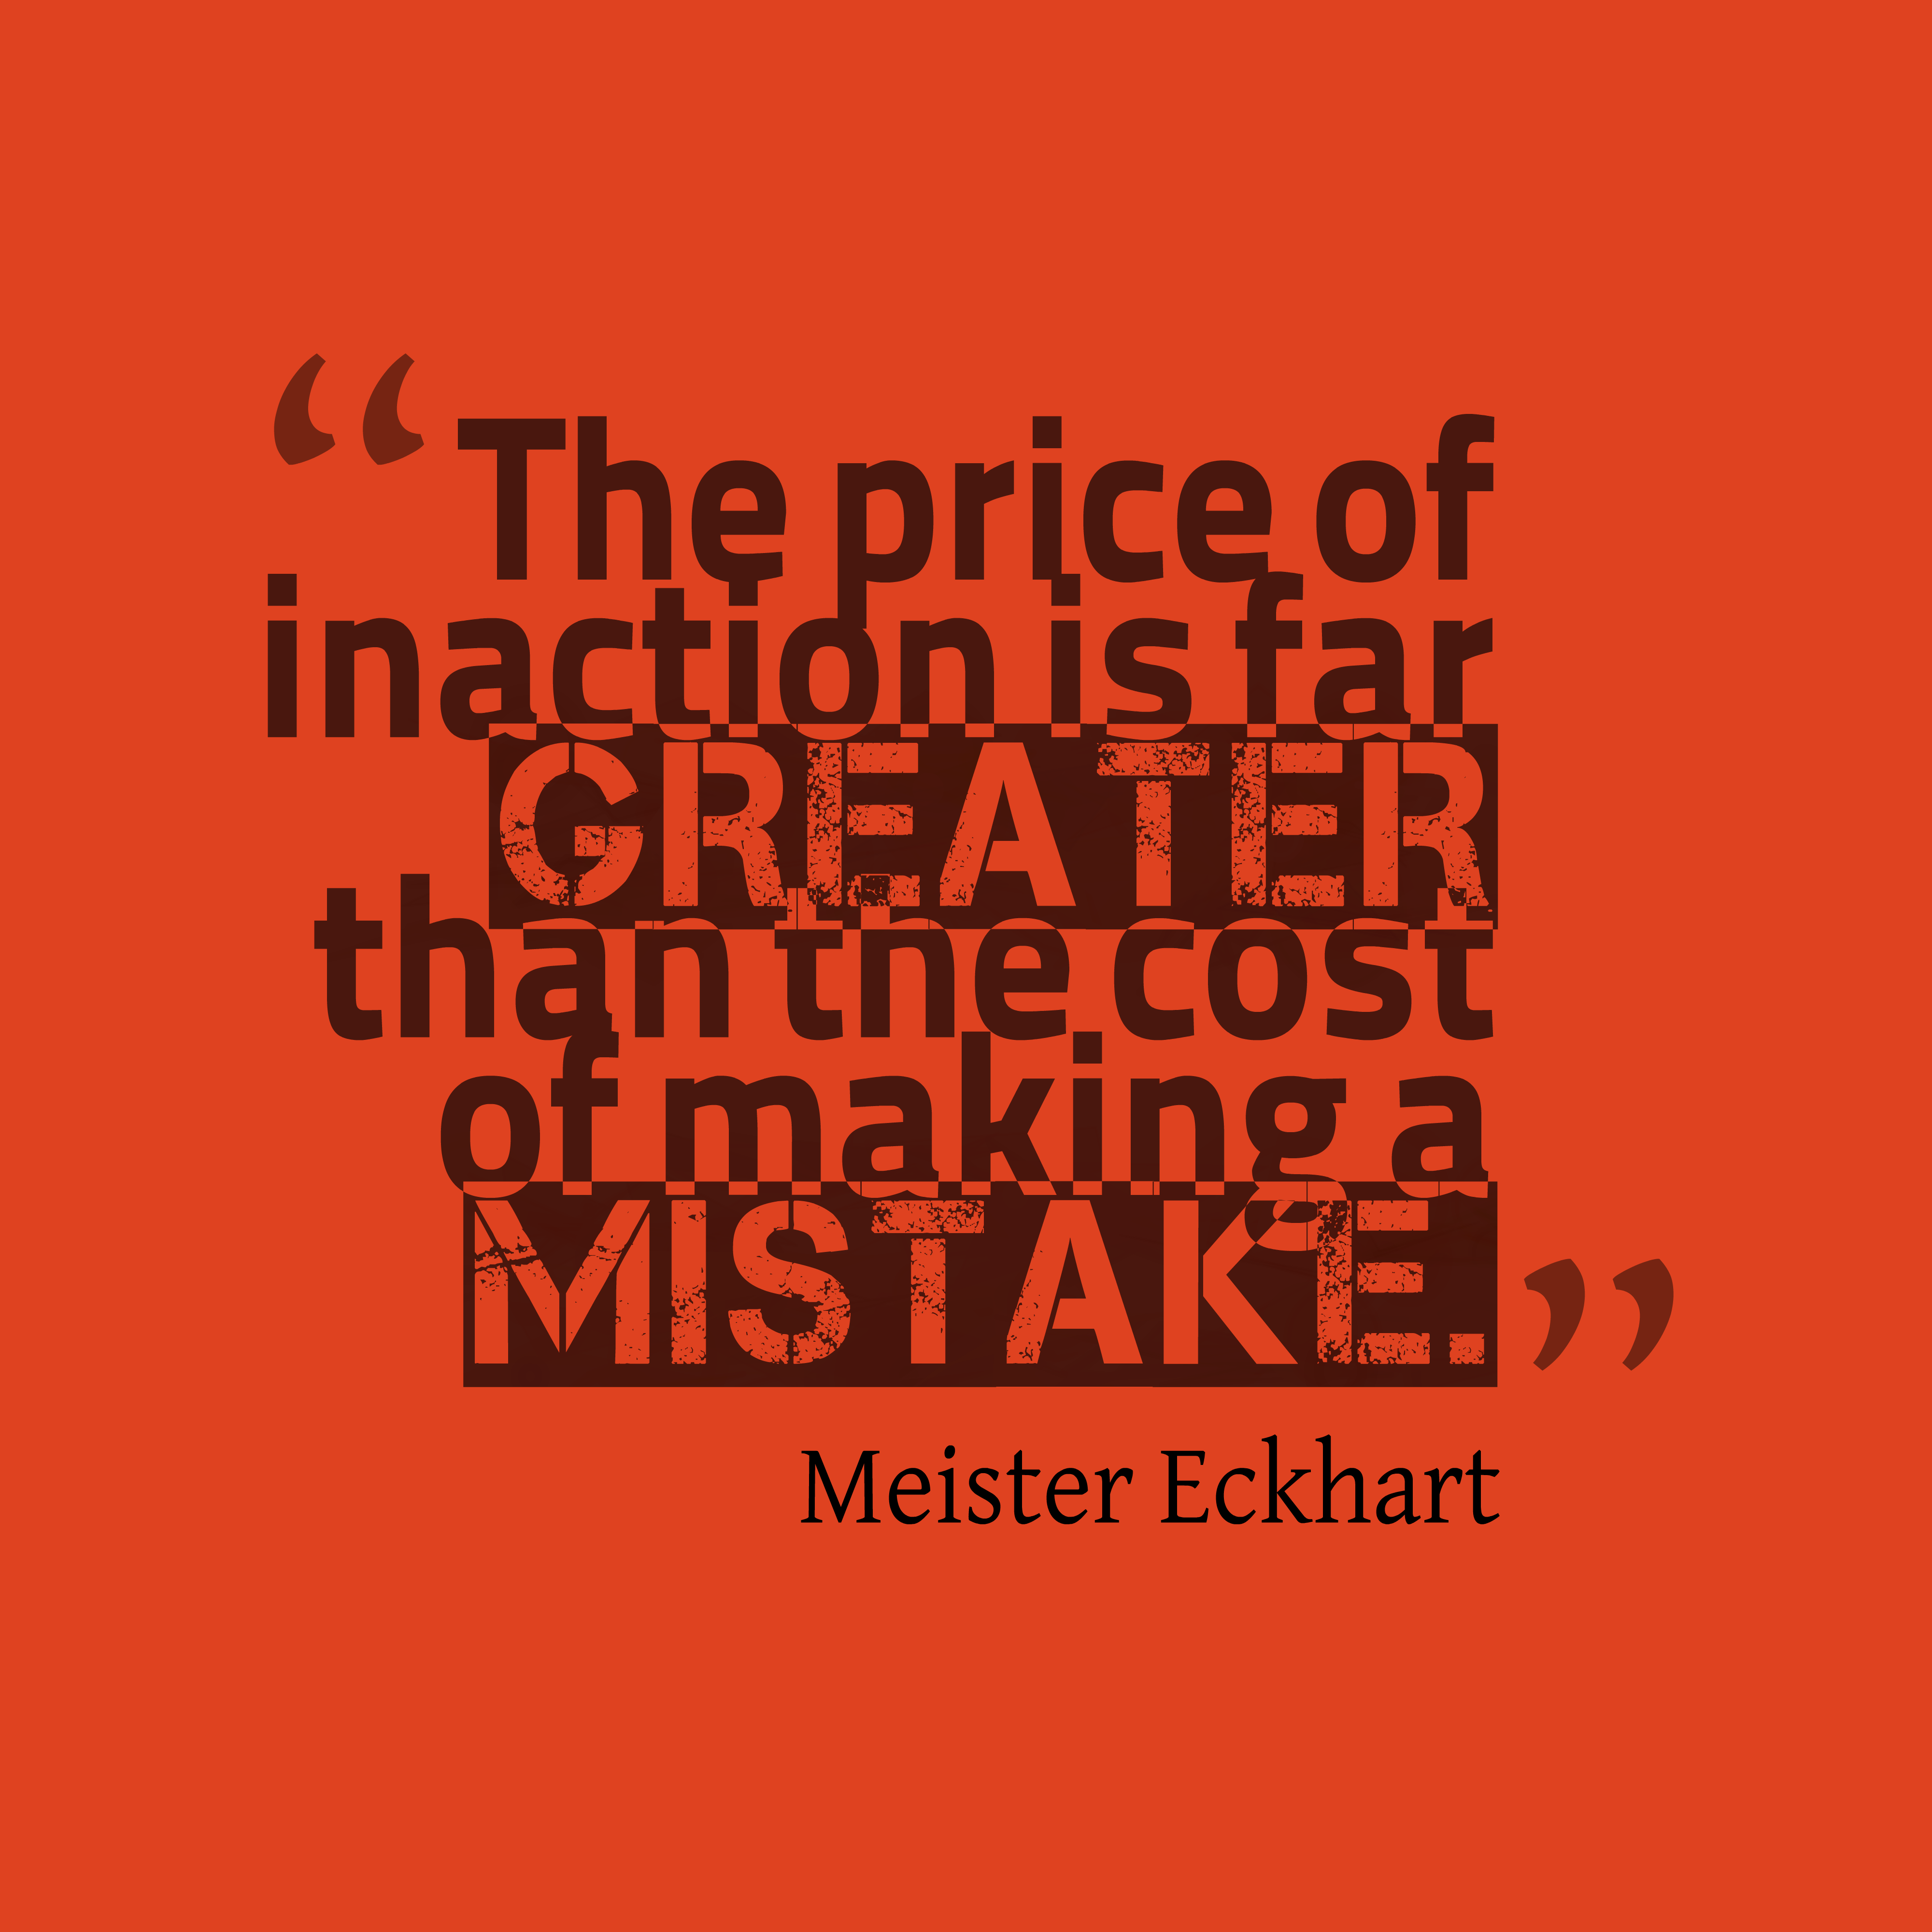 Quotes image of The price of inaction is far greater than the cost of making a mistake.